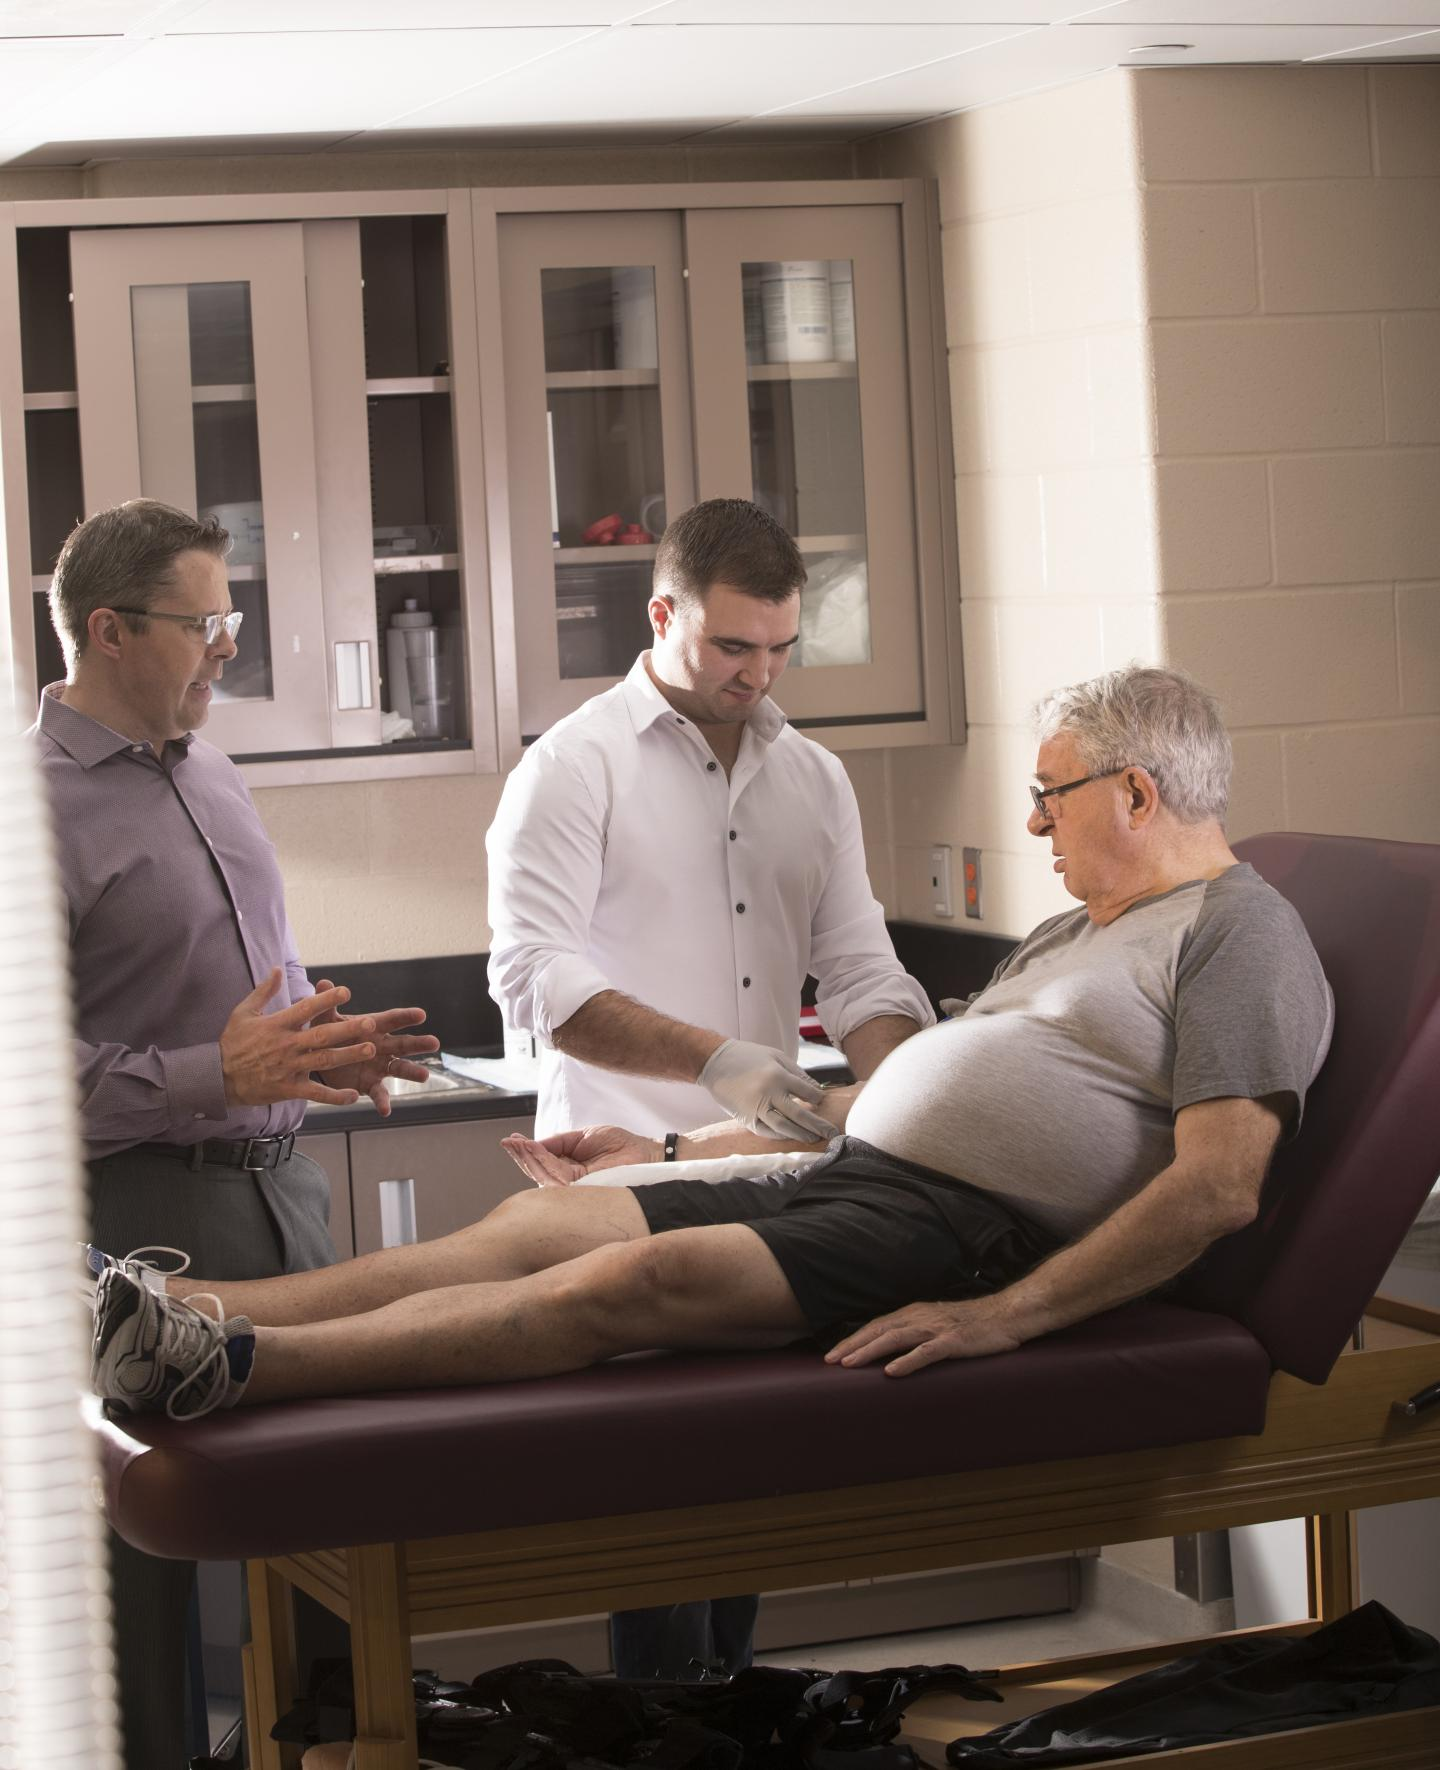 Inactivity Can Generate Diabetes Symptoms in Vulnerable Patients